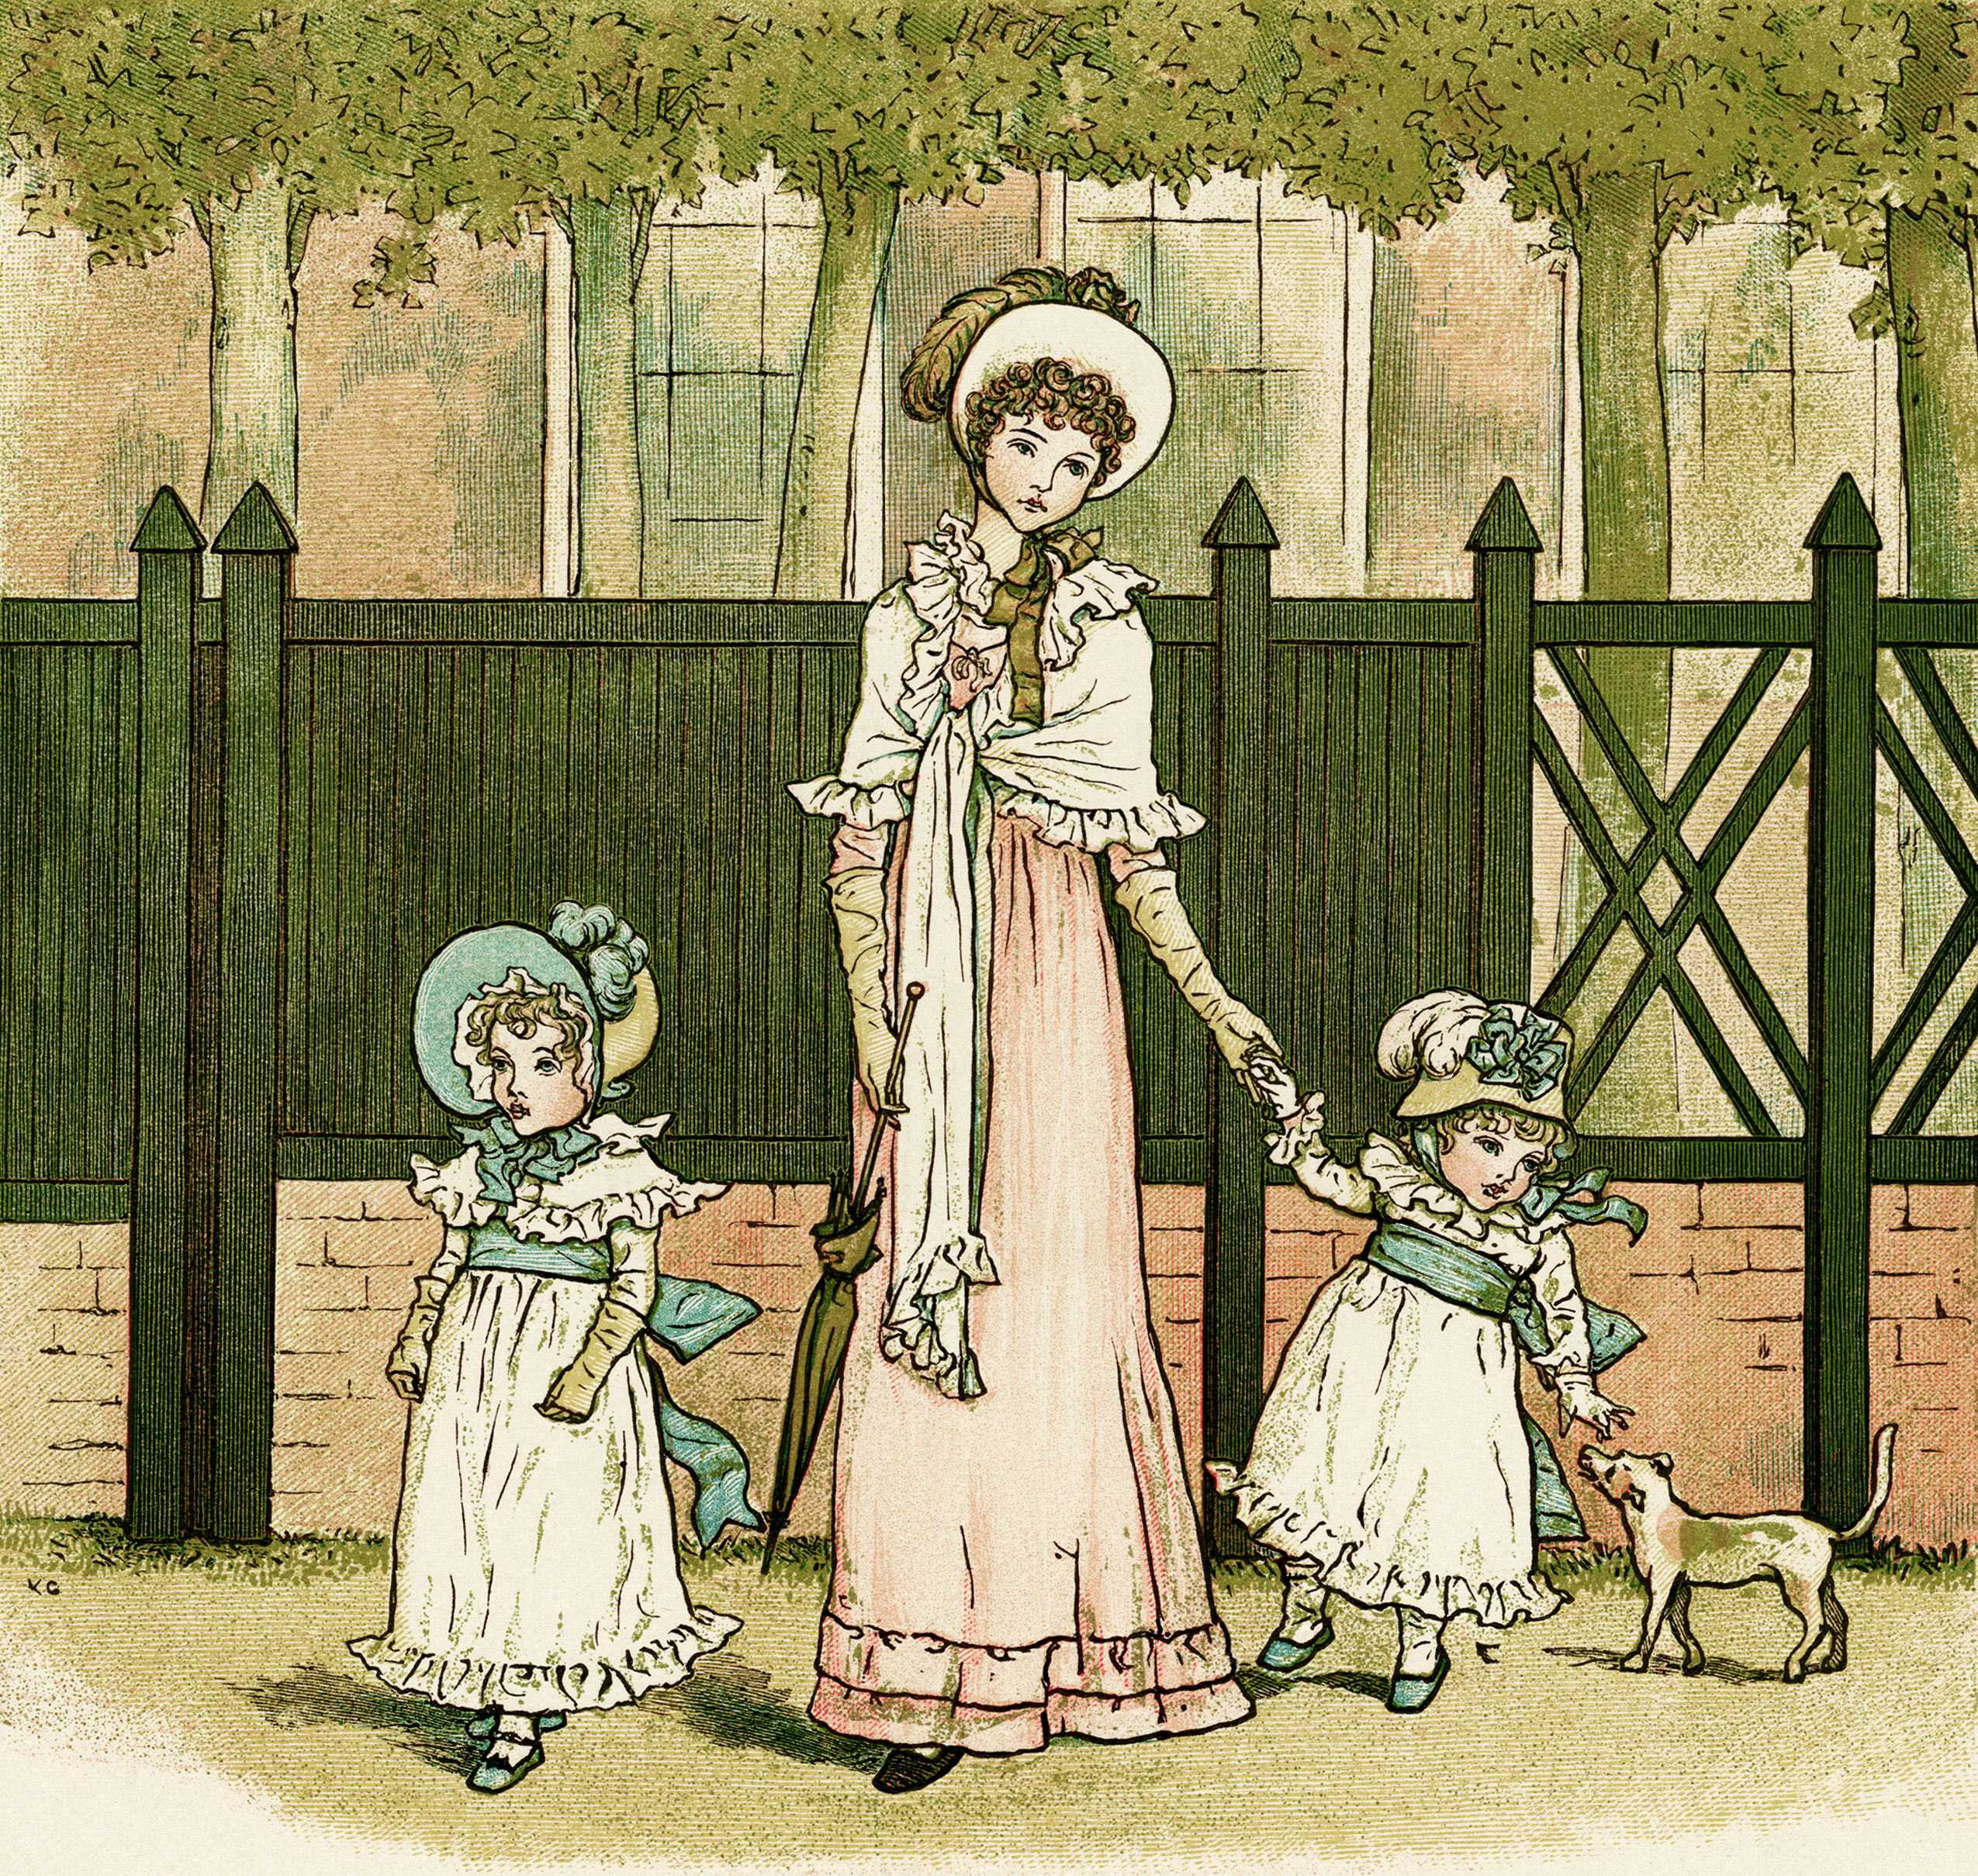 Kate Greenaway, Marigold Garden, Victorian storybook illustration, Going to see Grandma, vintage mother and children picture